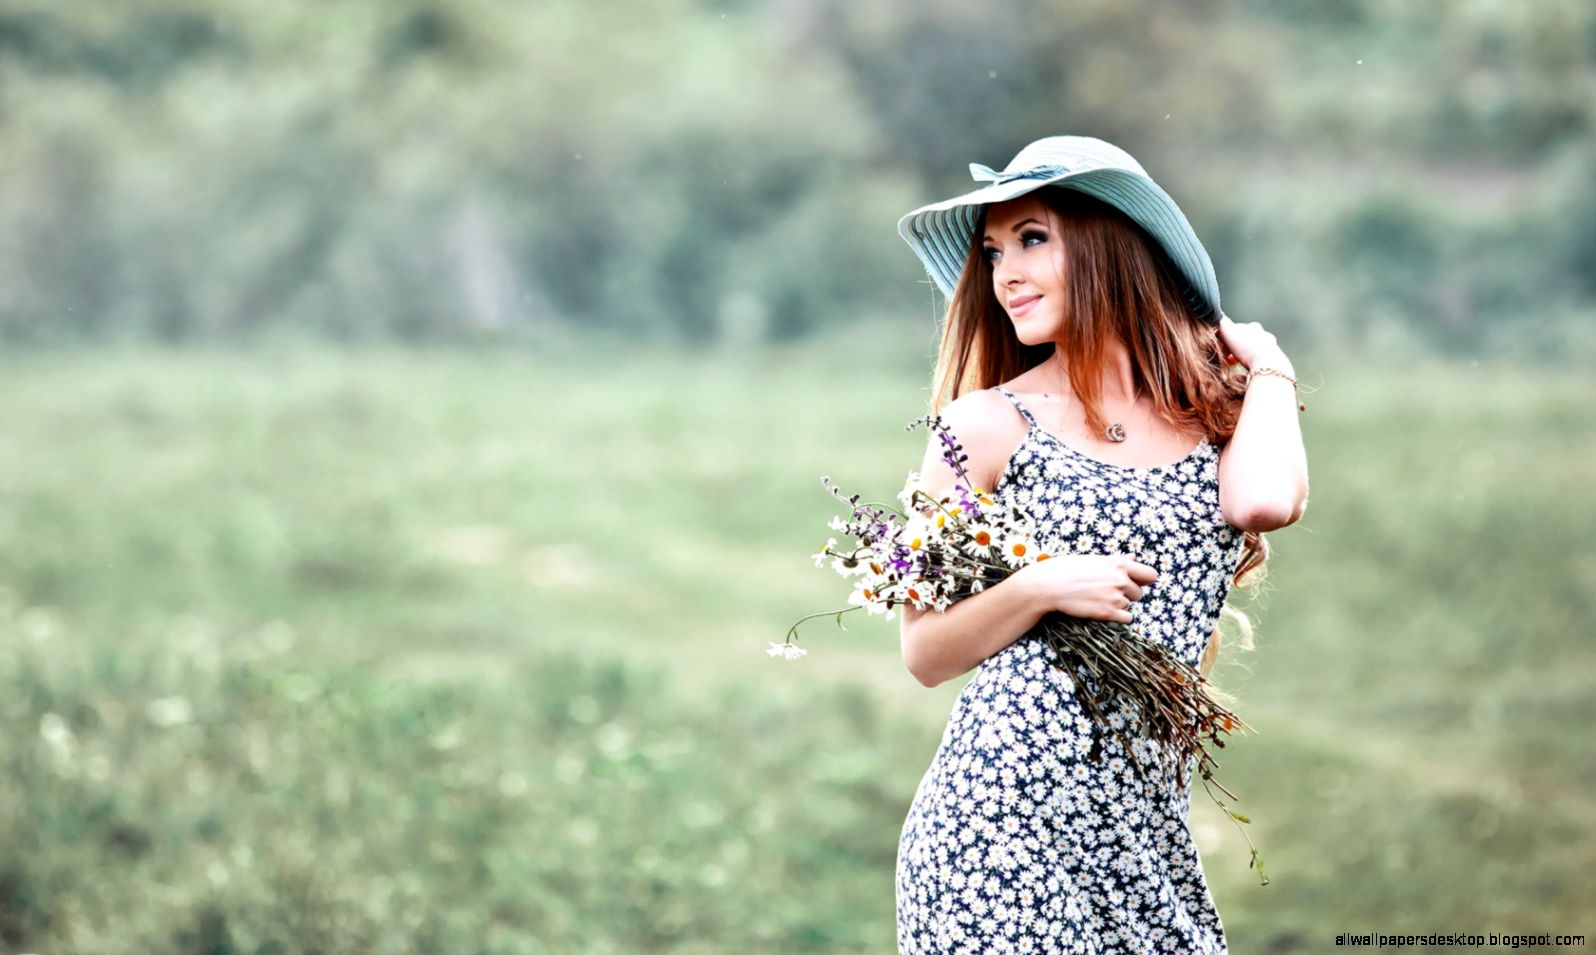 Lovely Girl Dress Hat Flowers HD Wallpaper   FreeWallsUp